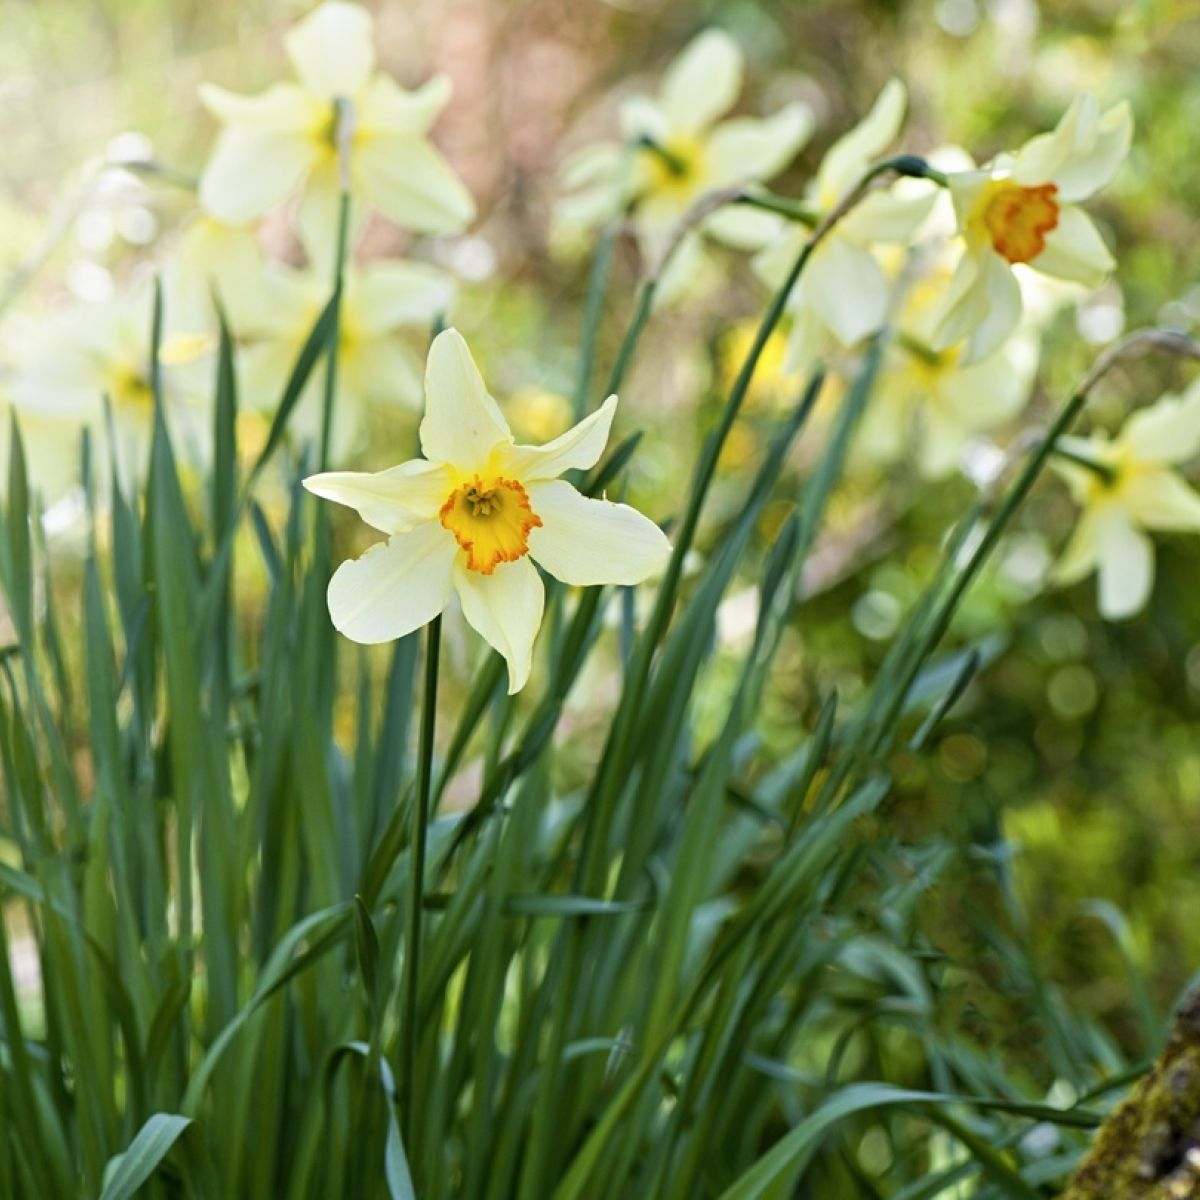 First frost of autumn, last frost of spring - The Irish Times